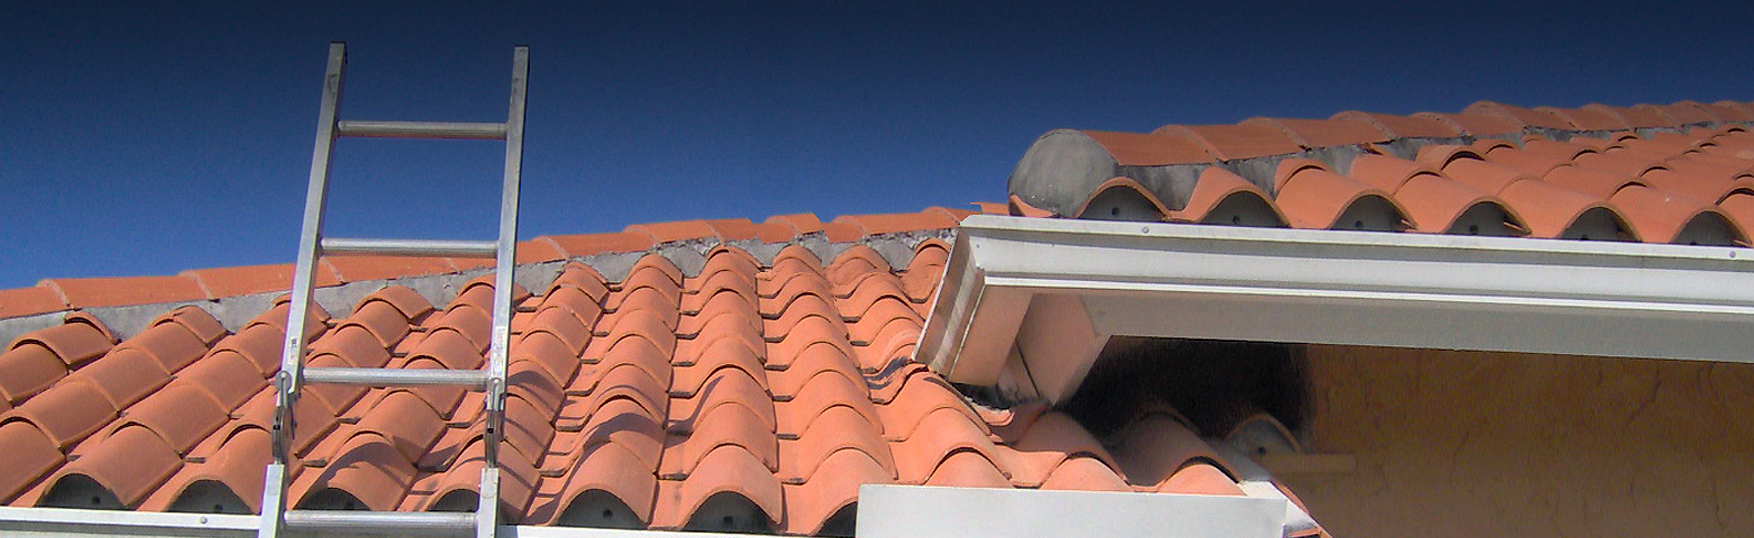 Roof Condition Inspections - Florida Home Inspections provided by Phoenix Home Inspections - Serving Cental Florida